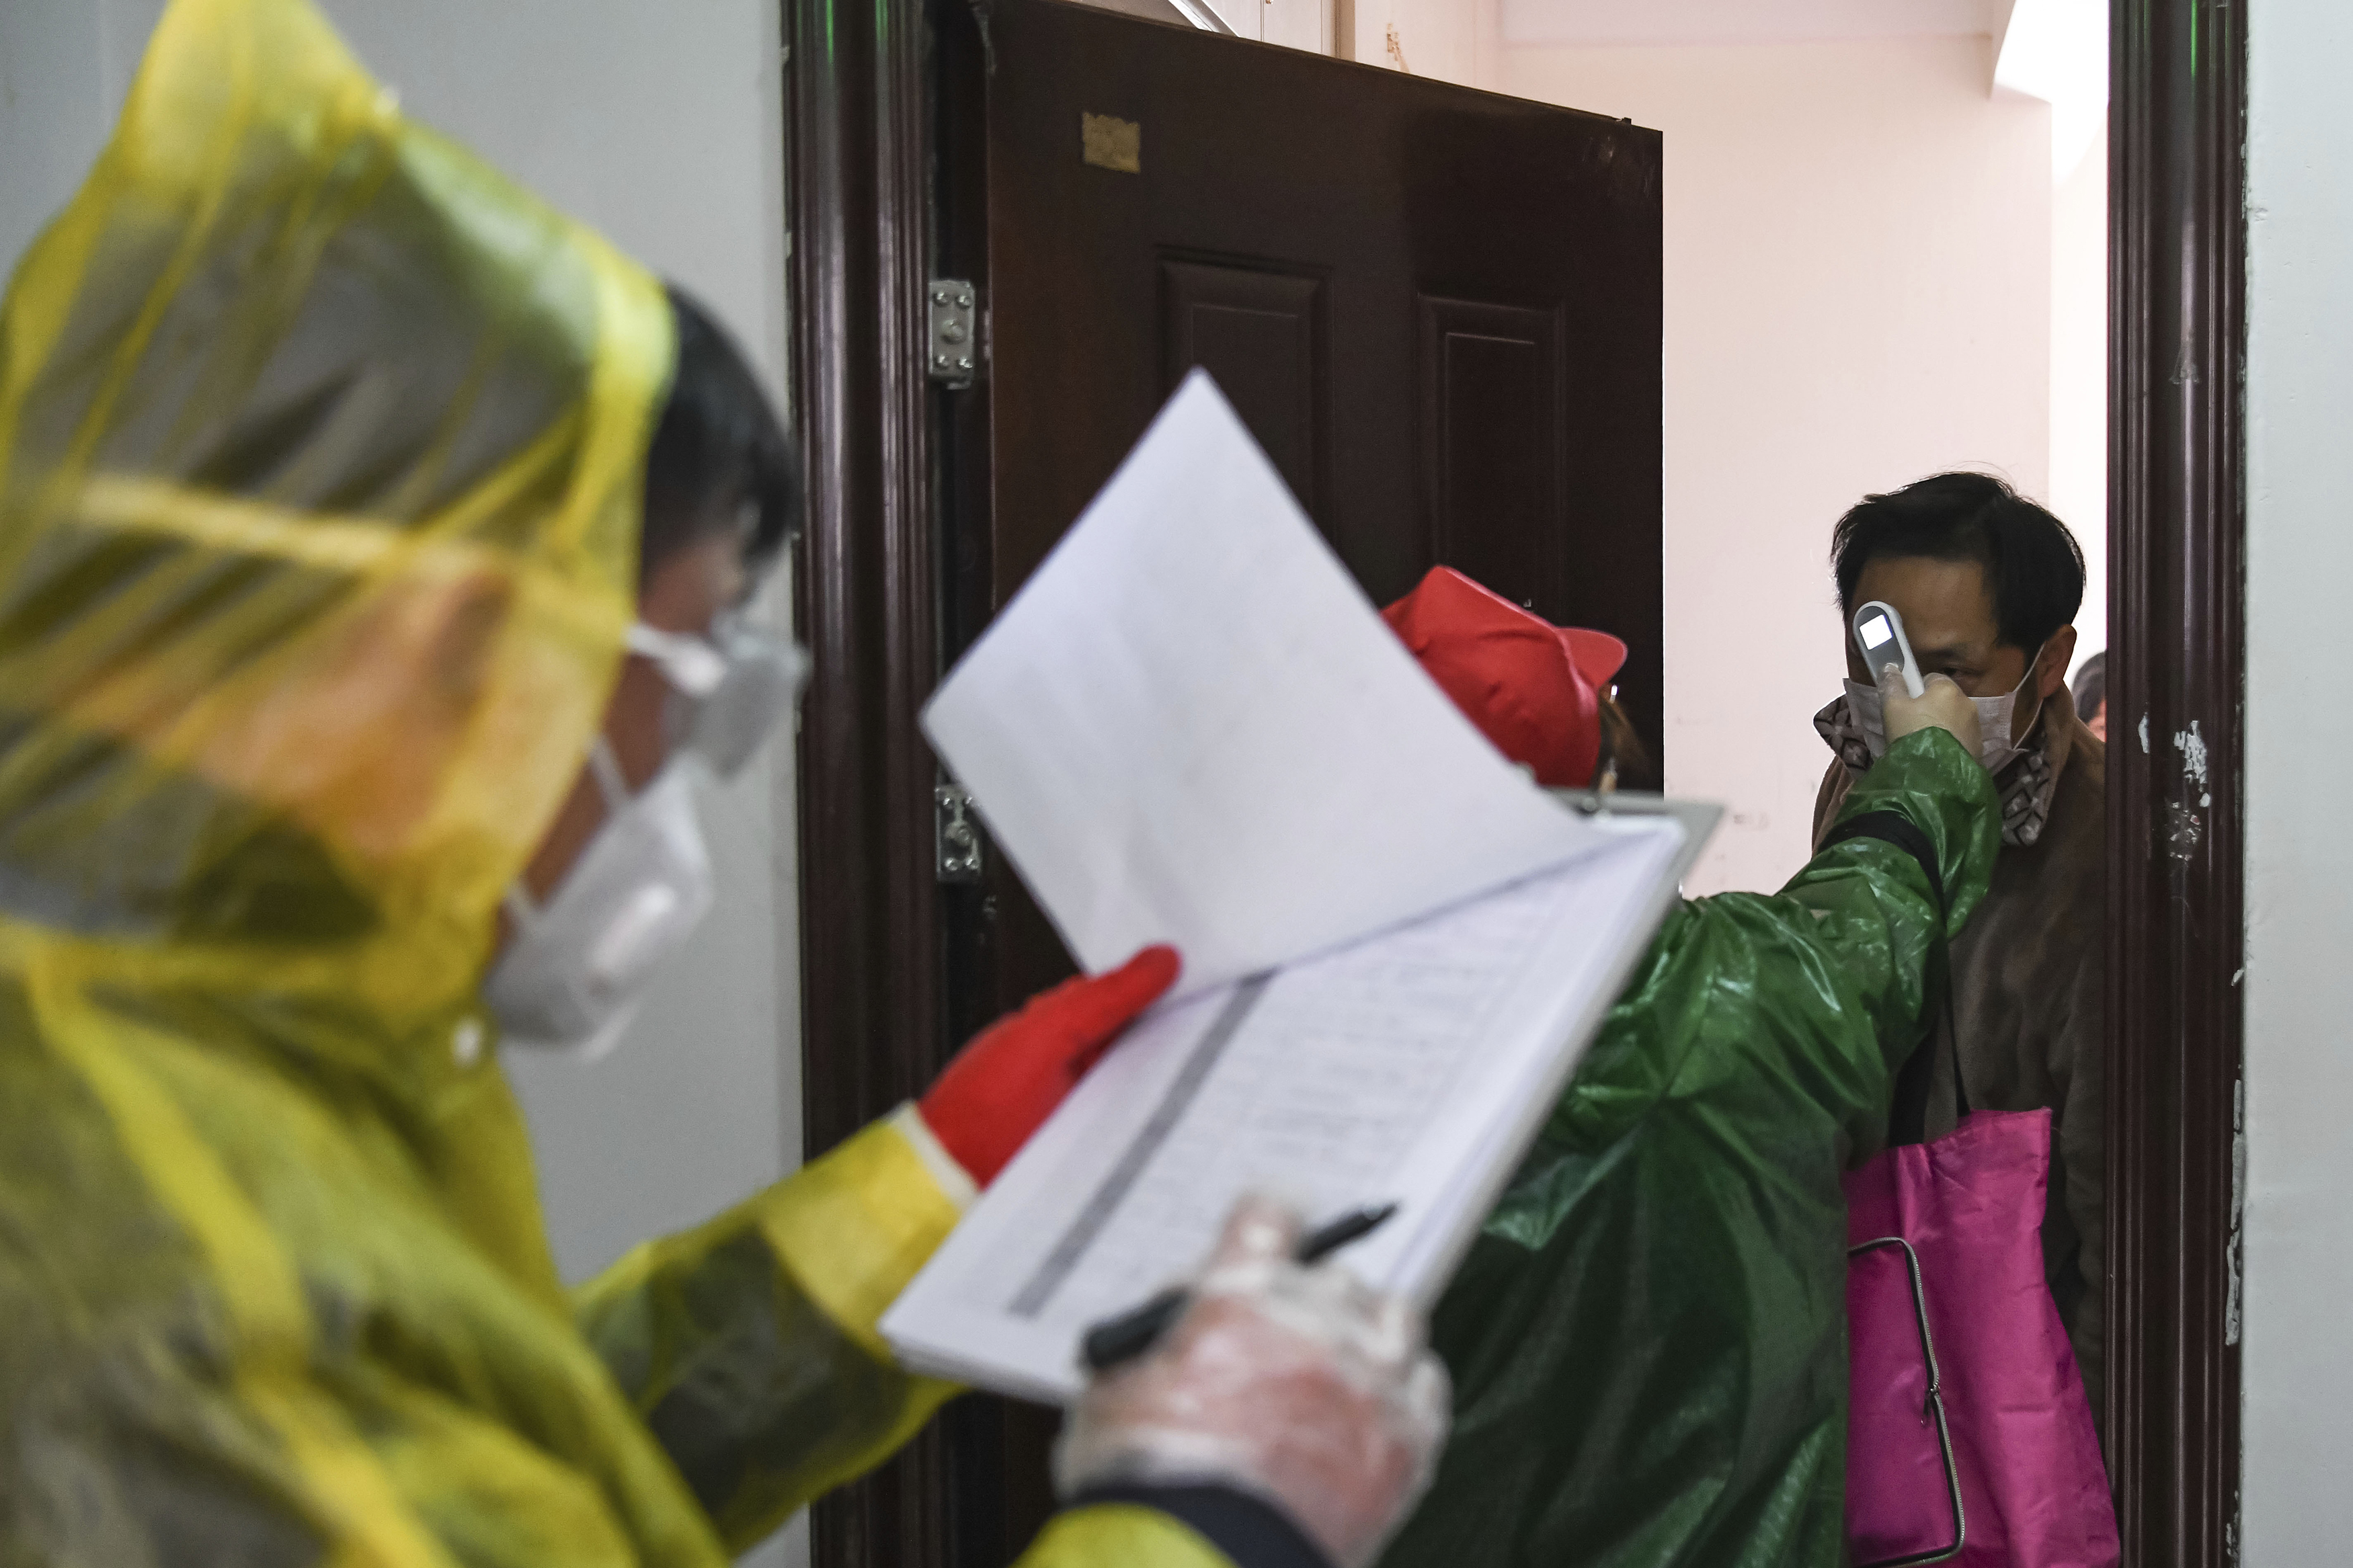 In this photo released by Xinhua News Agency, workers go door to door to check the temperature of residents during a health screening campaign in the Qingheju Community, Qingshan District of Wuhan in central China's Hubei Province on Feb. 18, 2020.